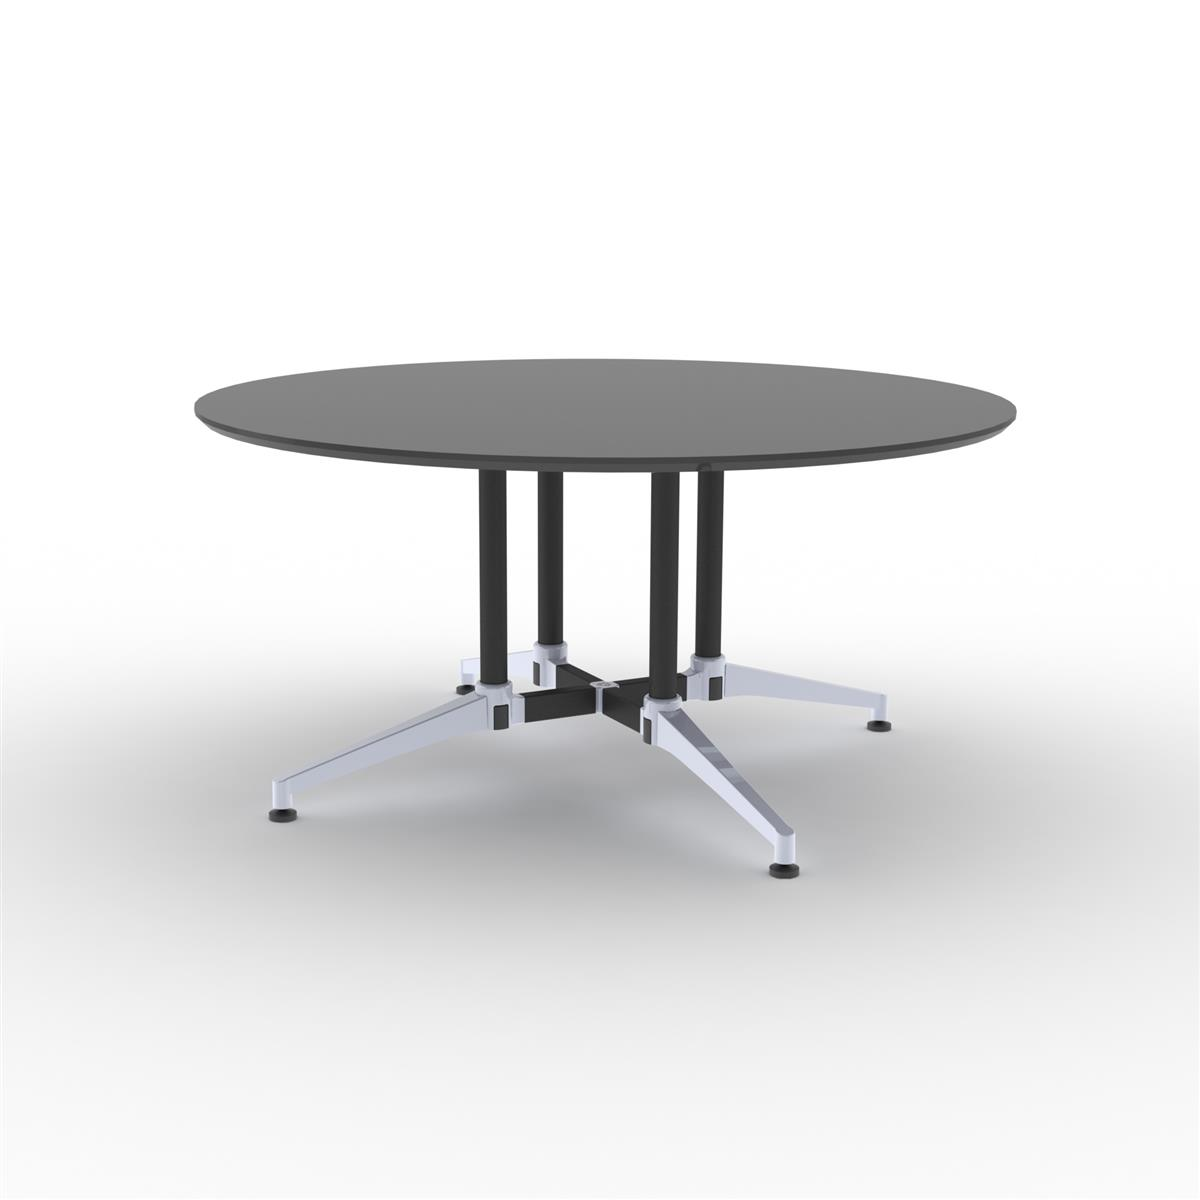 X1 Seamless Table Ø150 cm - sort linoleum og sort/alu understell